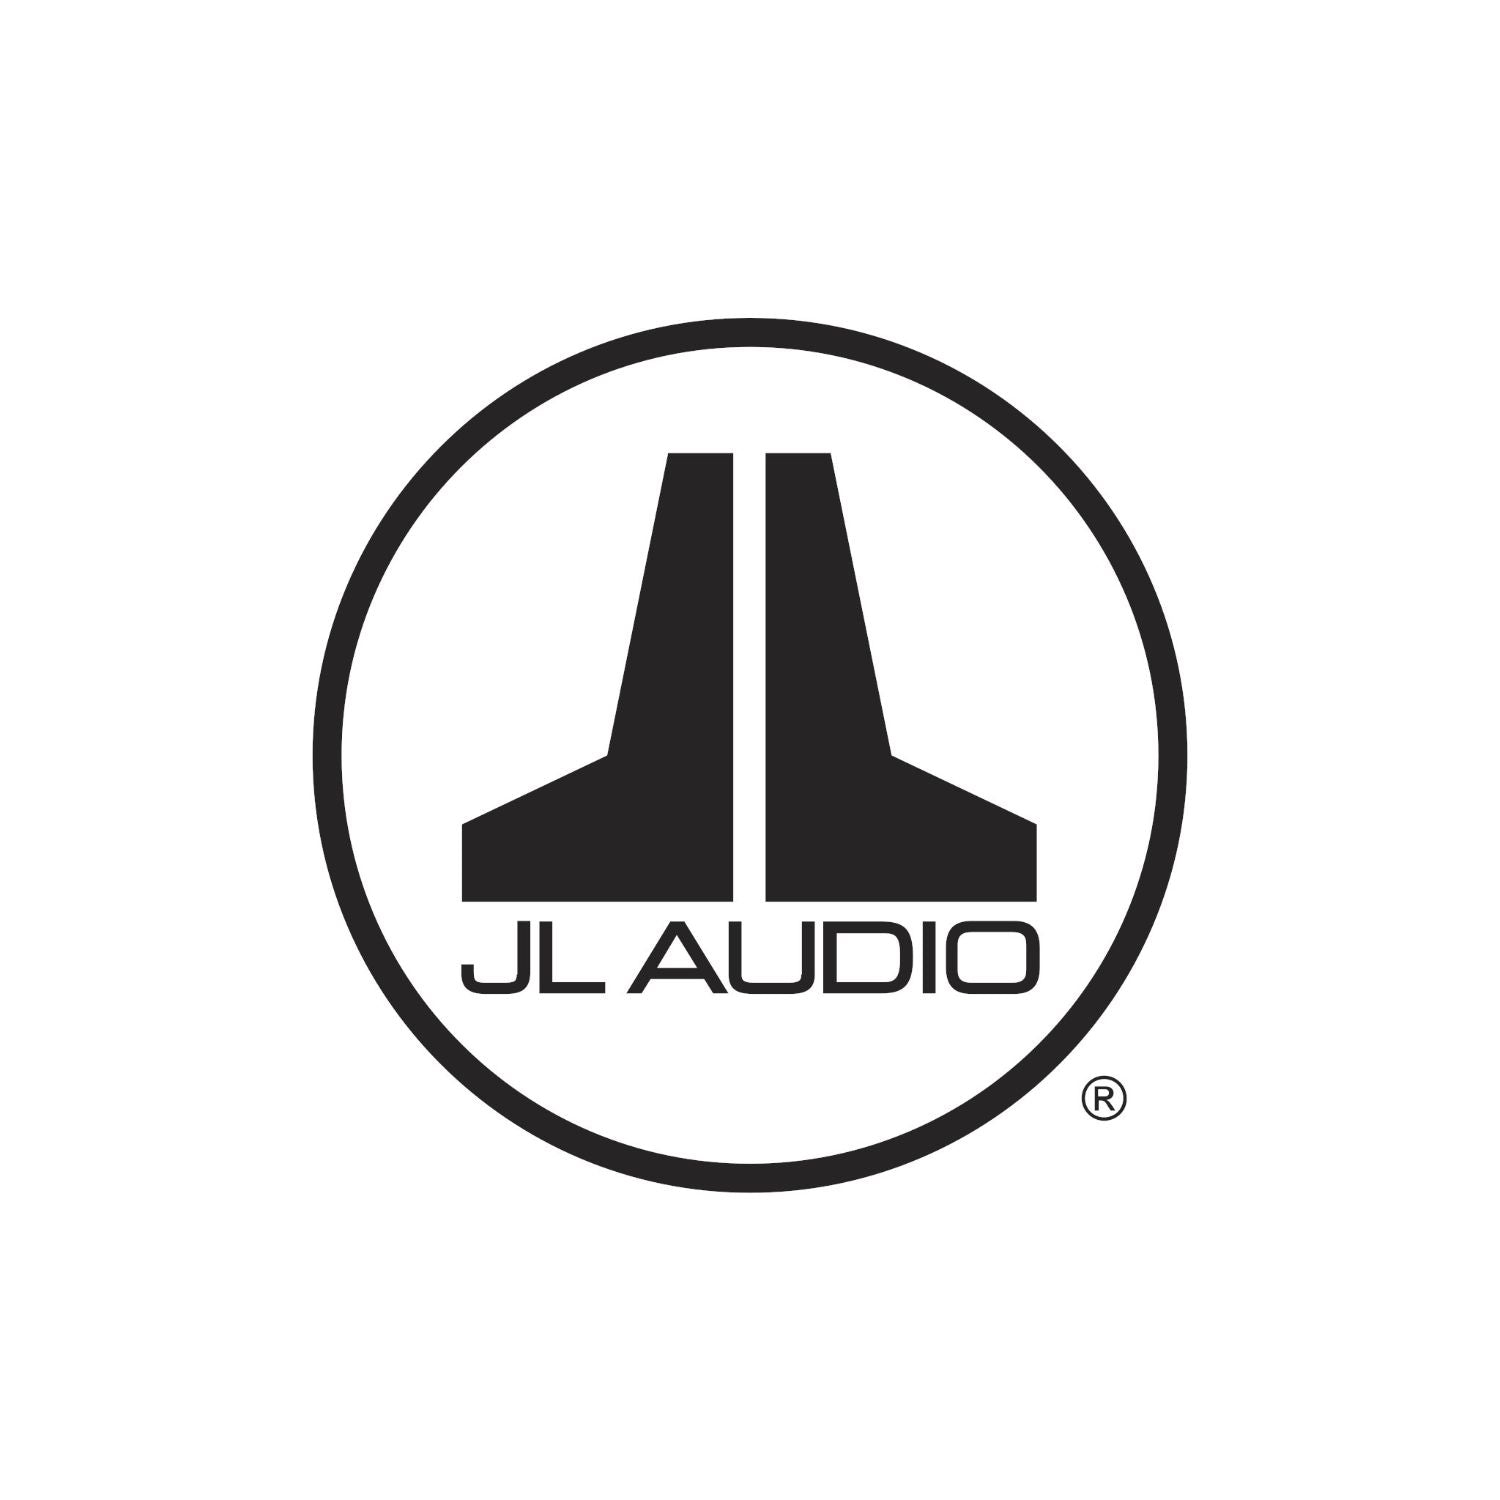 Black JL Audio Badge Logo Decal